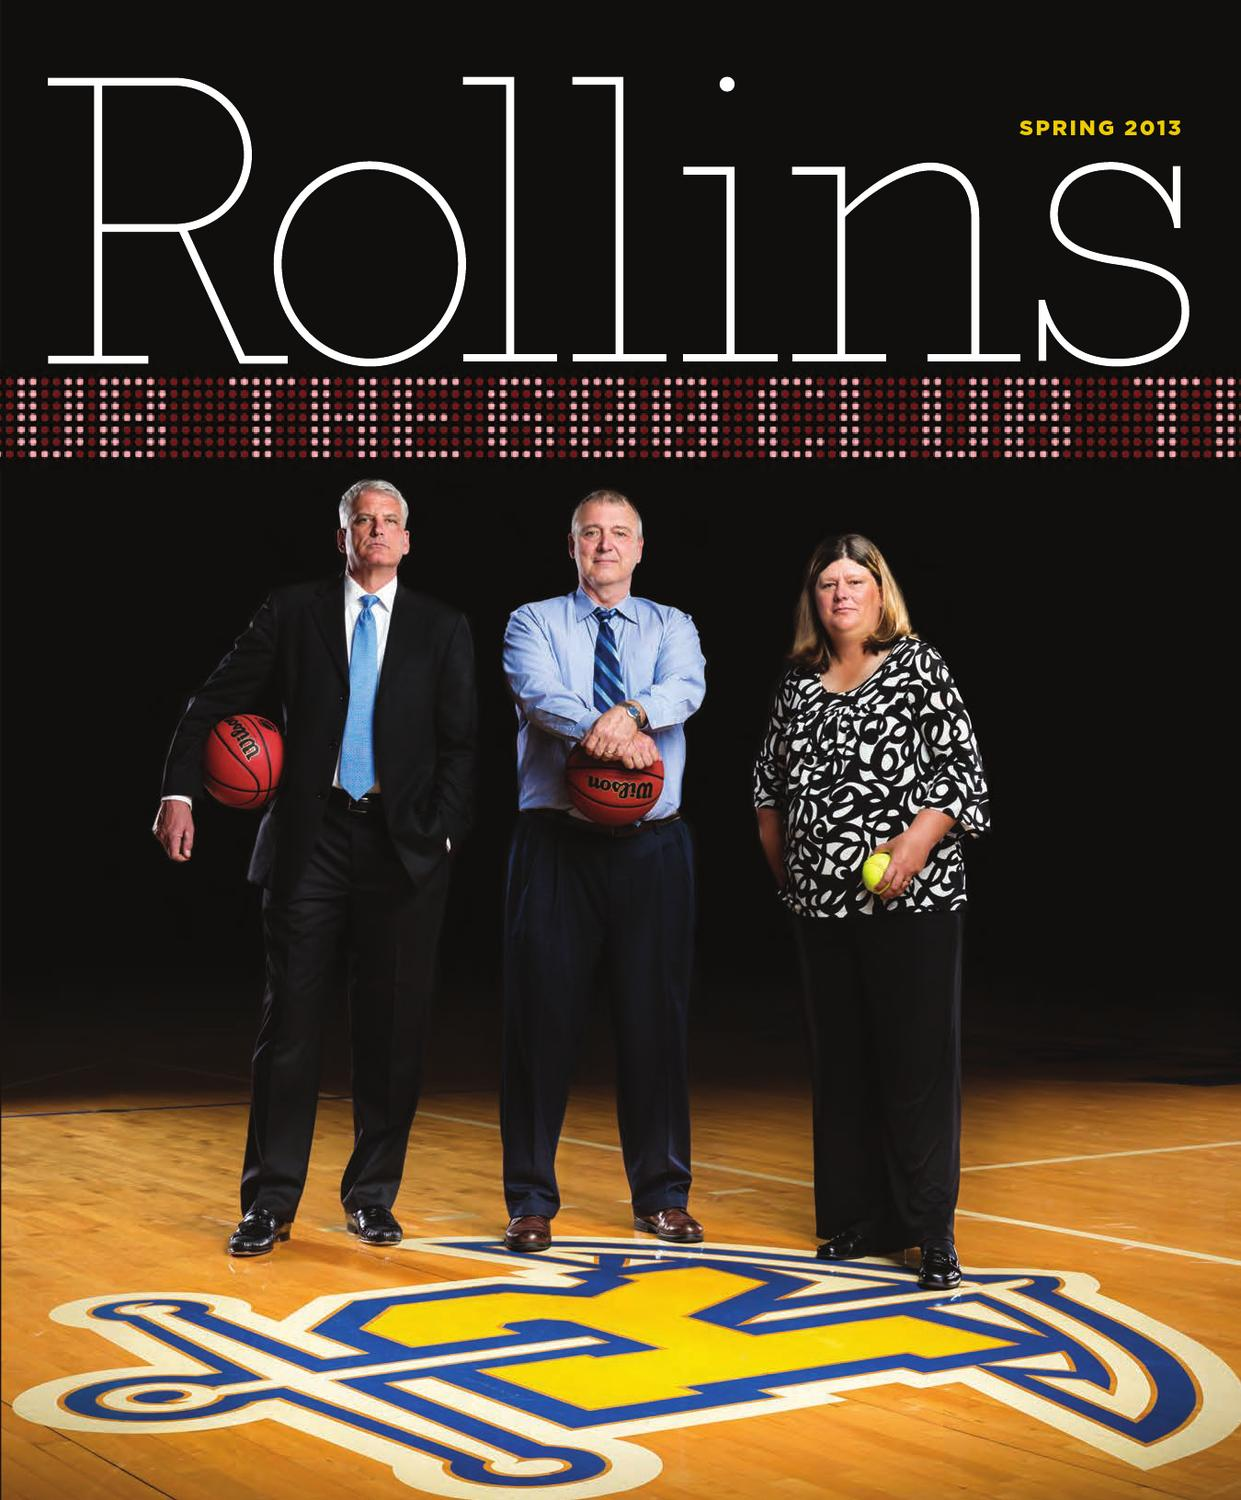 Chapter 4 At Rollins College: Spring 2013 By Rollins College - Issuu